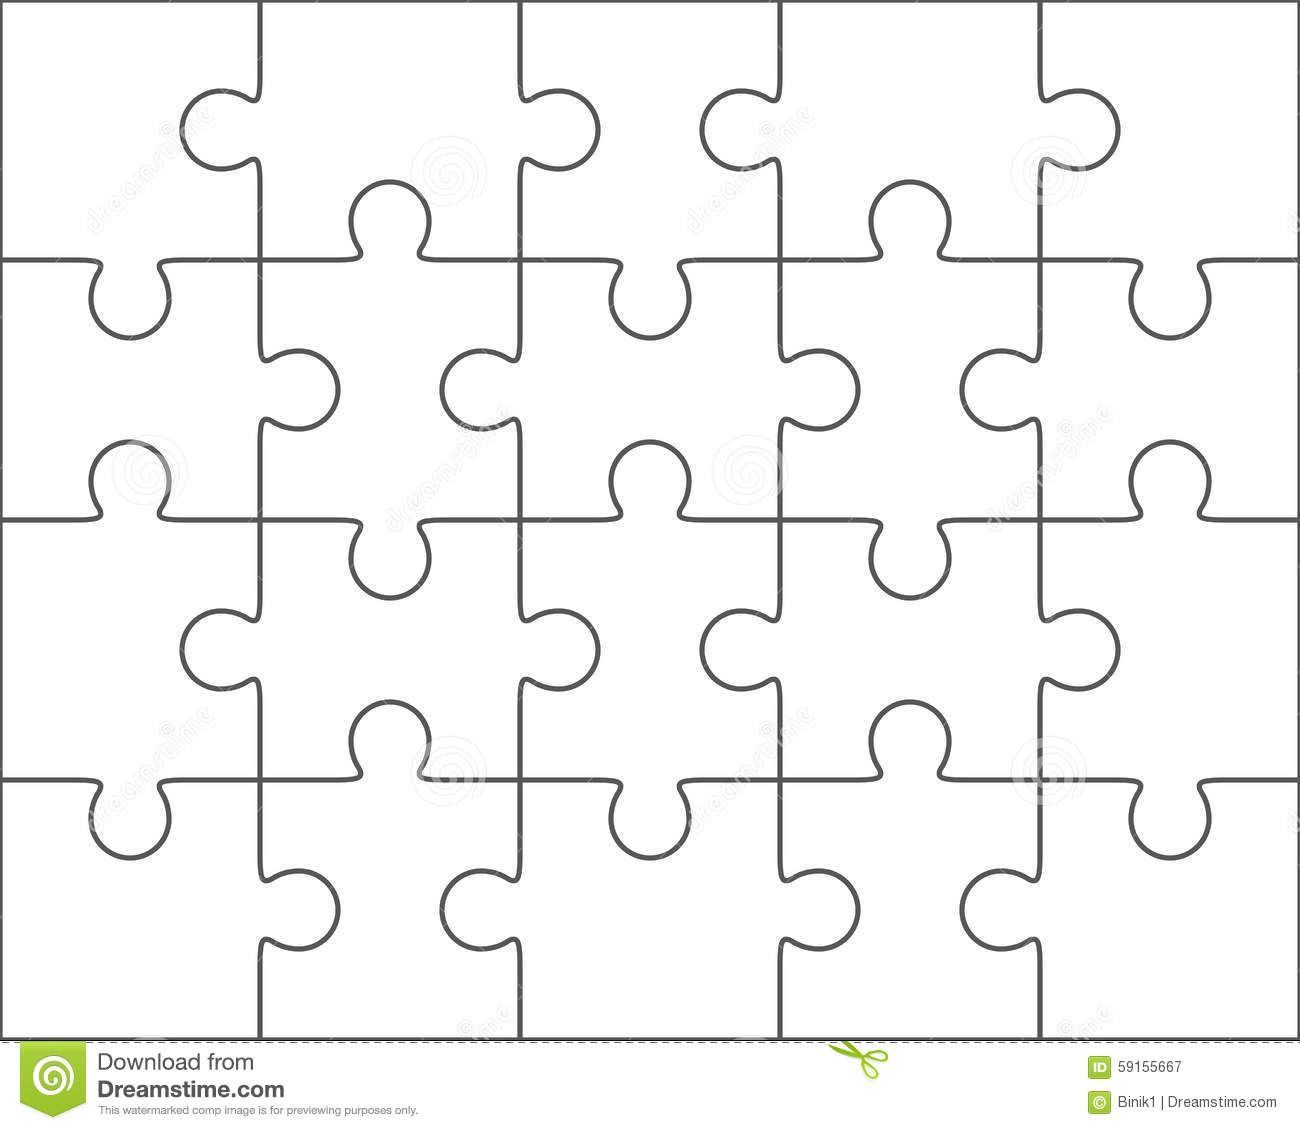 Jigsaw Puzzle Blank Template 4x5, Twenty Pieces Stock